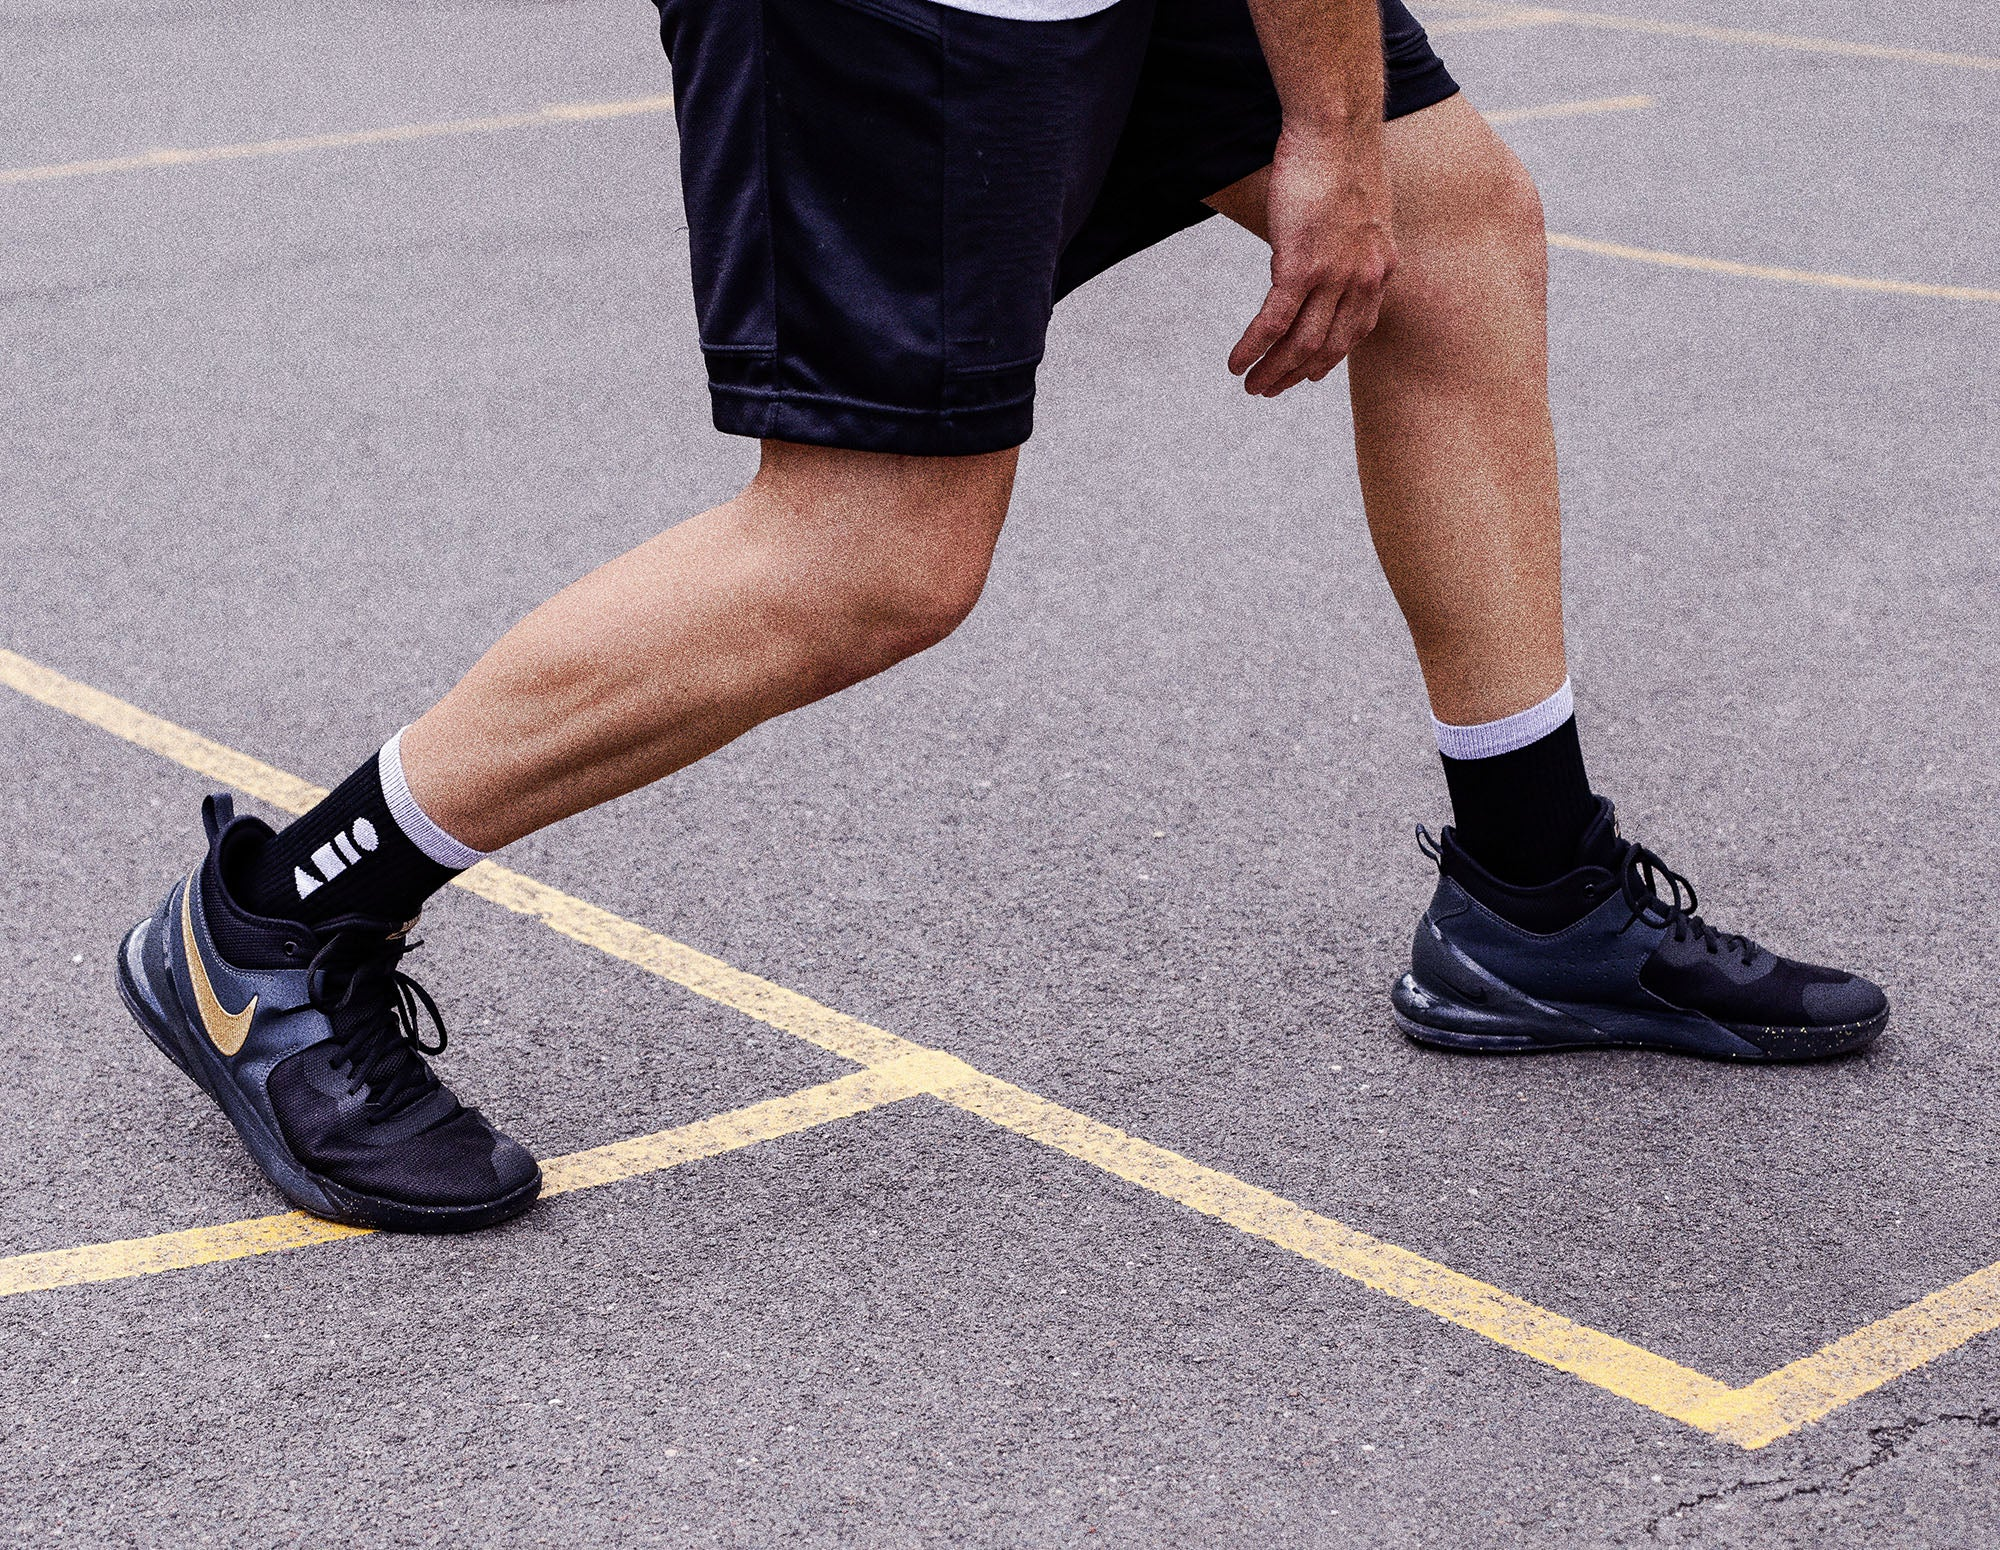 Clay Active's black sport and athletic sock is Australian made and perfect for the gym, training, basketball, tennis and soccer. Comfy, stylish sport socks.